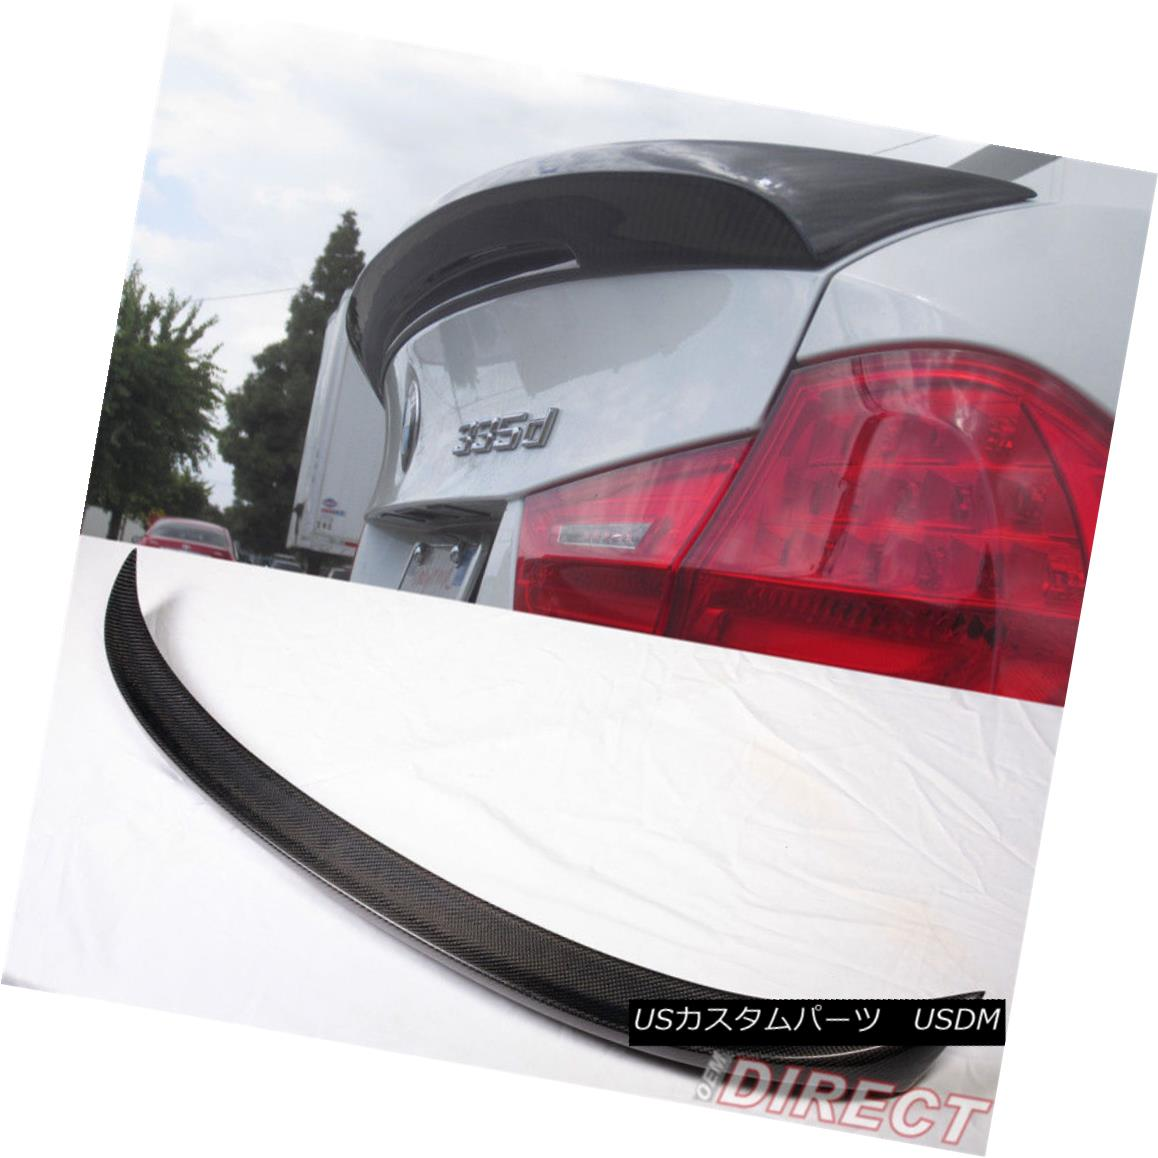 エアロパーツ 05-11 BMW E90 3-Series Sedan Mtech Msport Carbon Fiber Trunk Spoiler CF 05-11 BMW E90 3シリーズセダンMtech Msport炭素繊維トランク・スポイラーCF